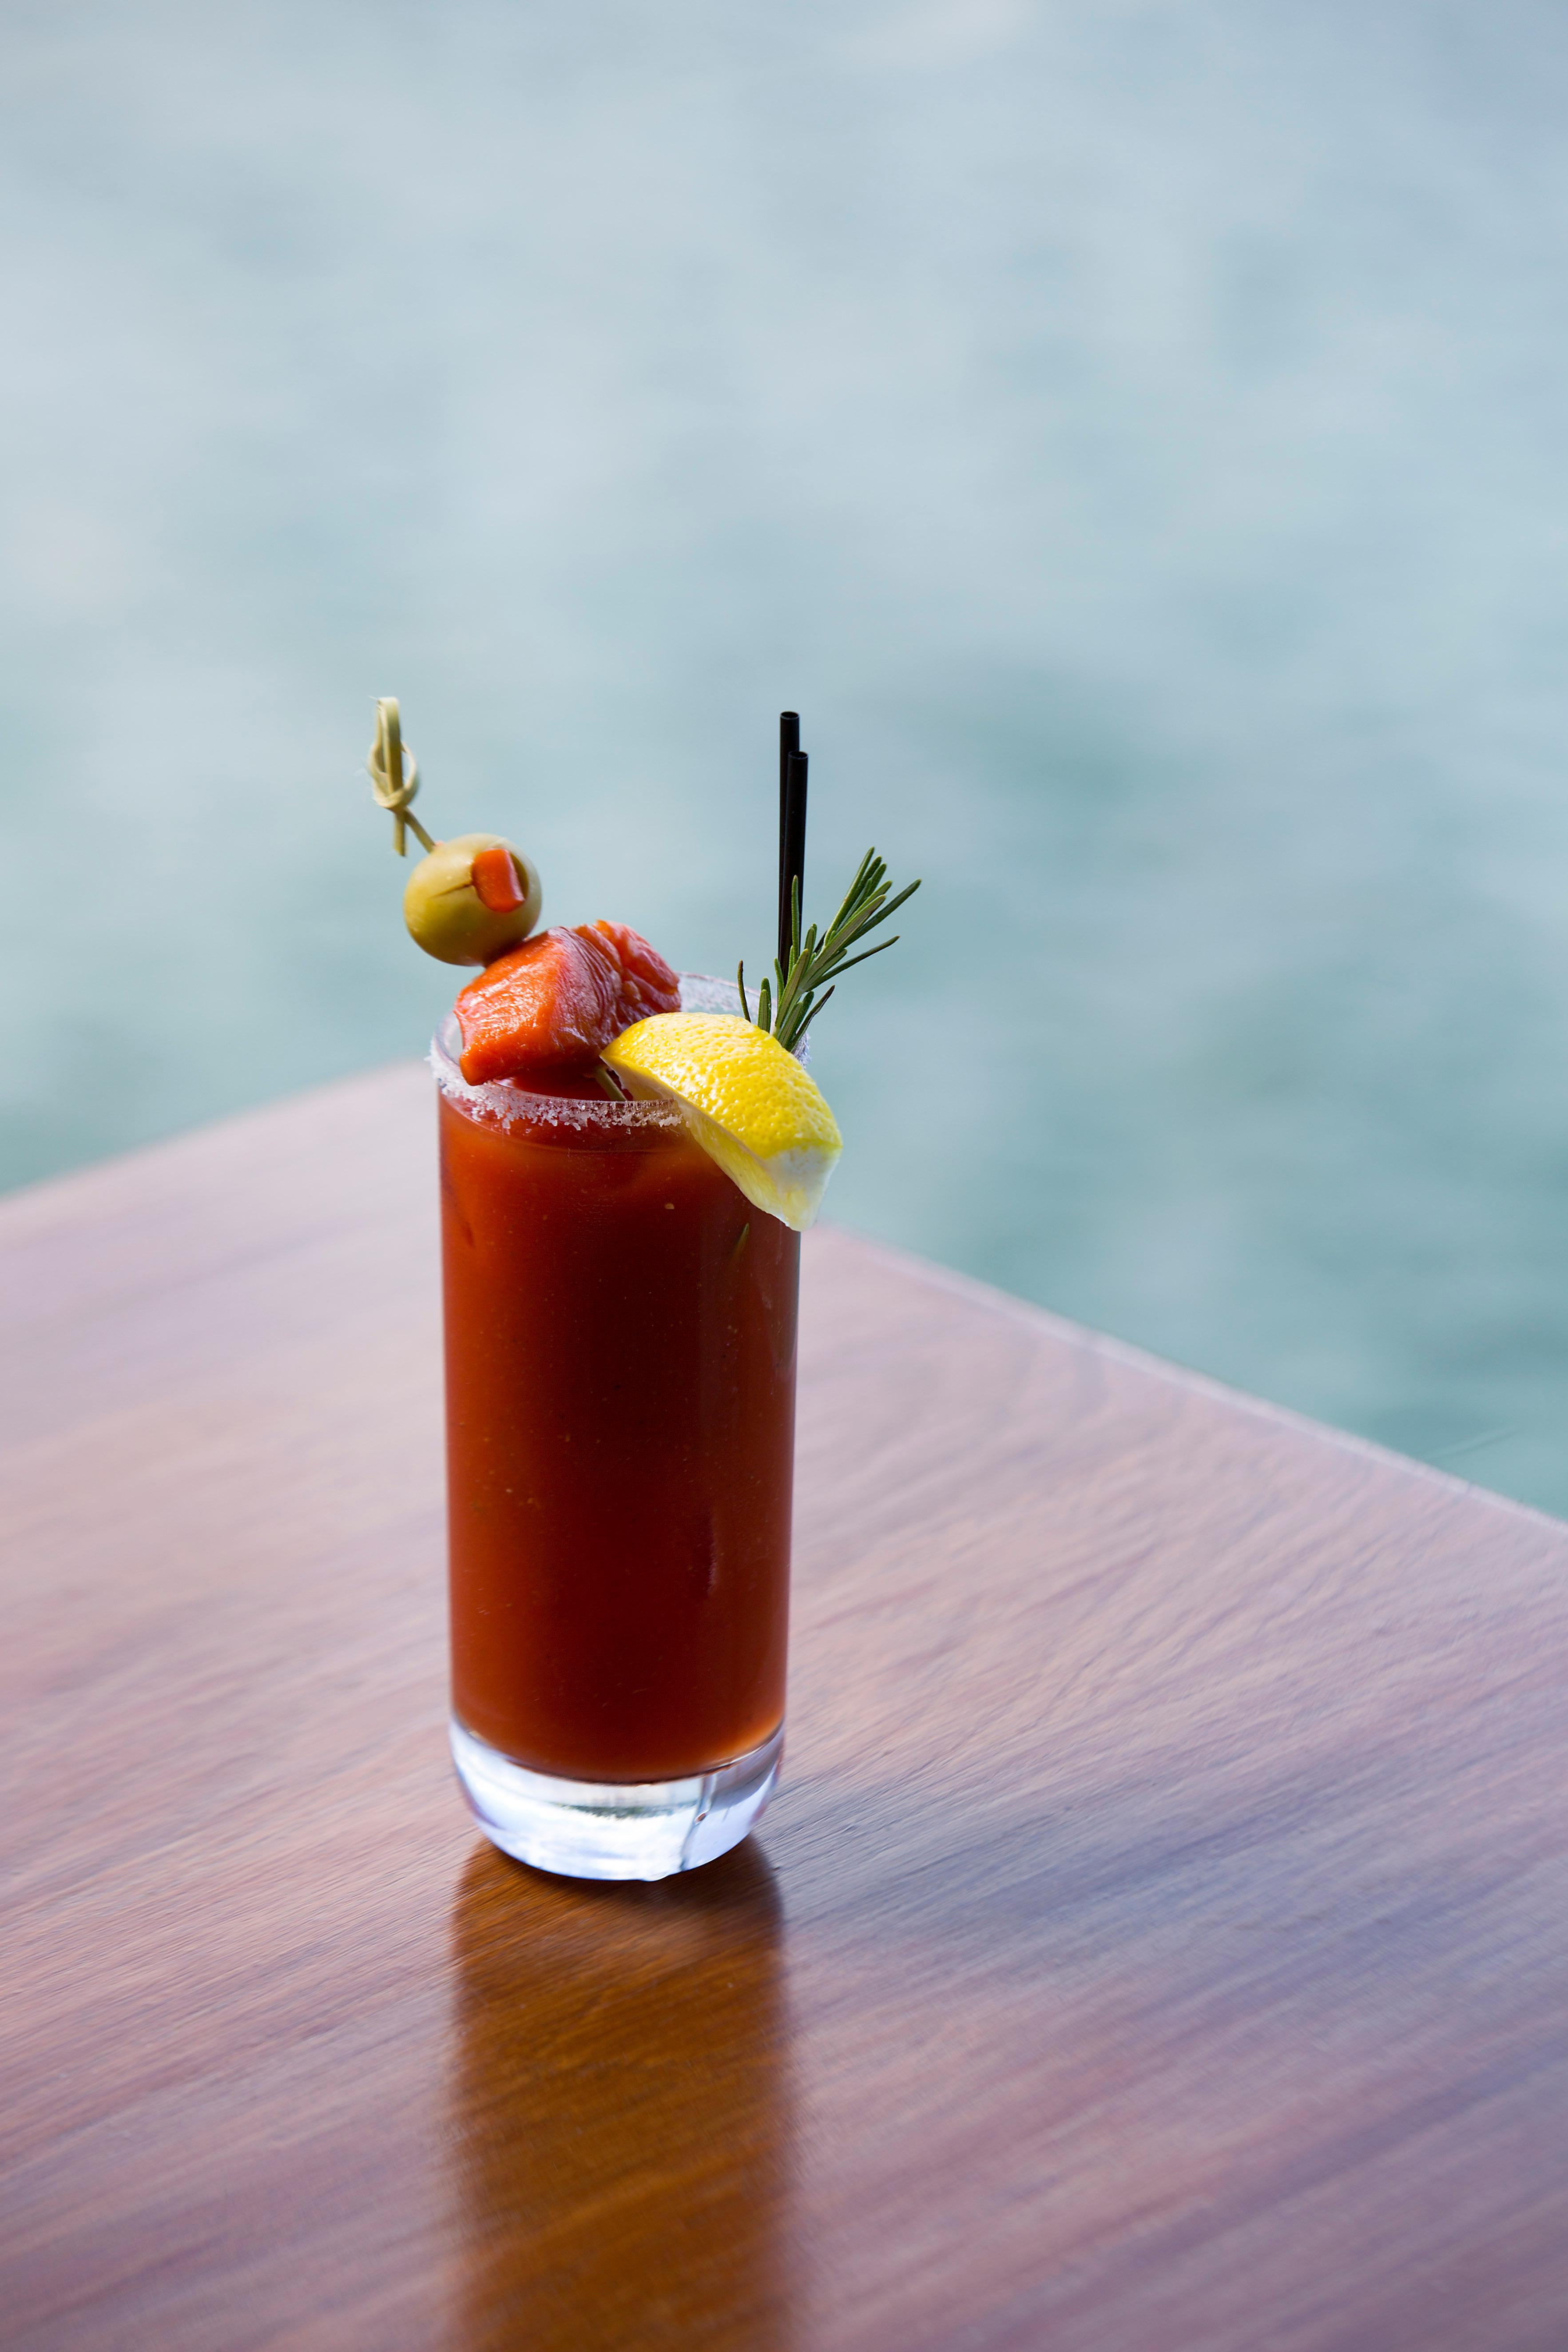 Ray's Bloody Mary, consisting of house infused with garlic vodka with classic Dimitri's bloody mix, spicy salt rim, and in-house smoked salmon. (Sy Bean / Seattle Refined)